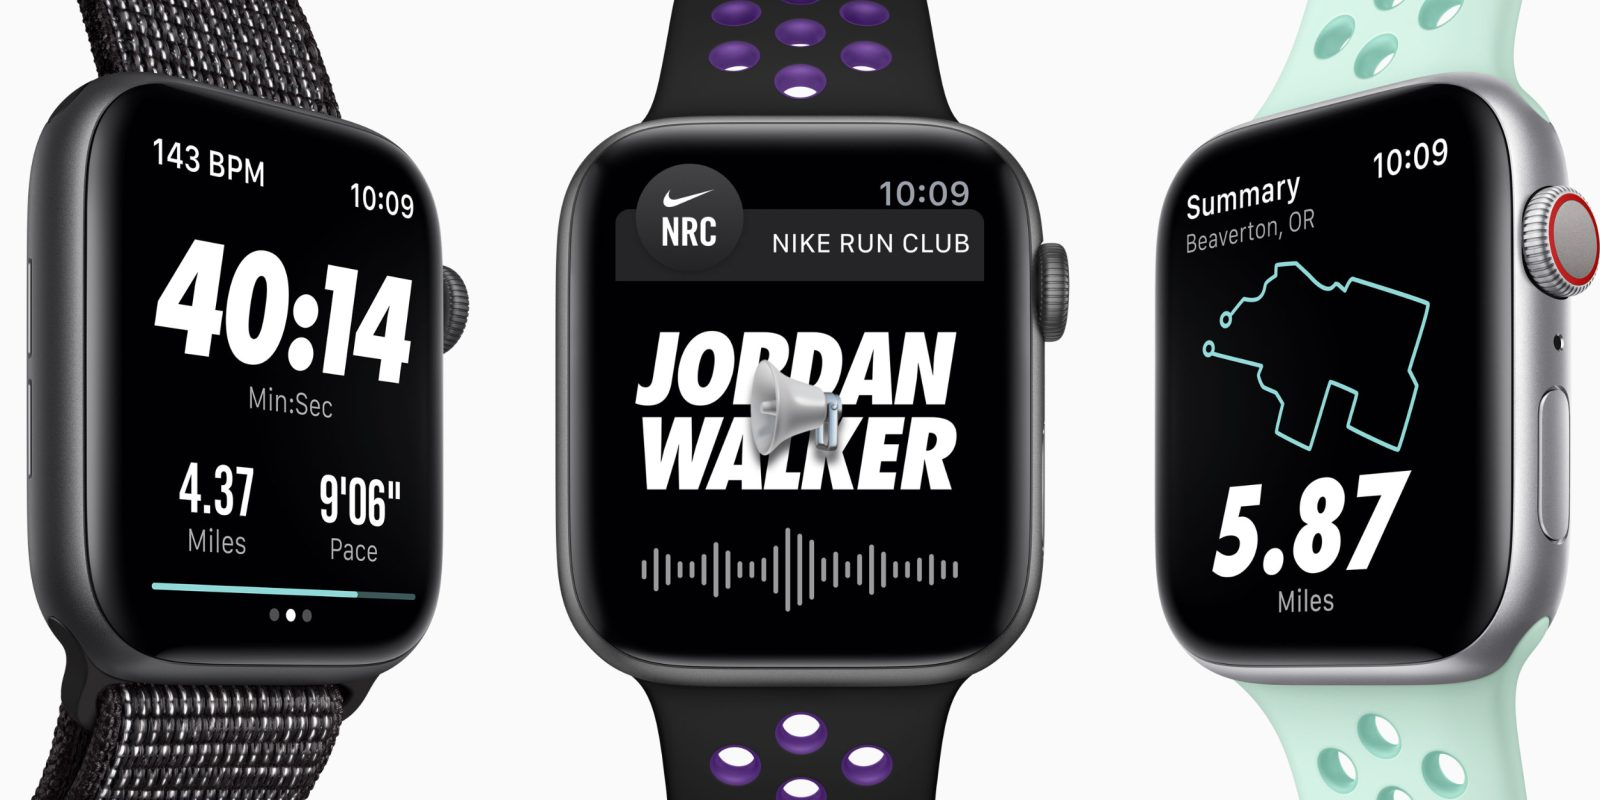 Deals: Nike+ Apple Watch $100 off, iPhone 11 Pro, more - 9to5Mac